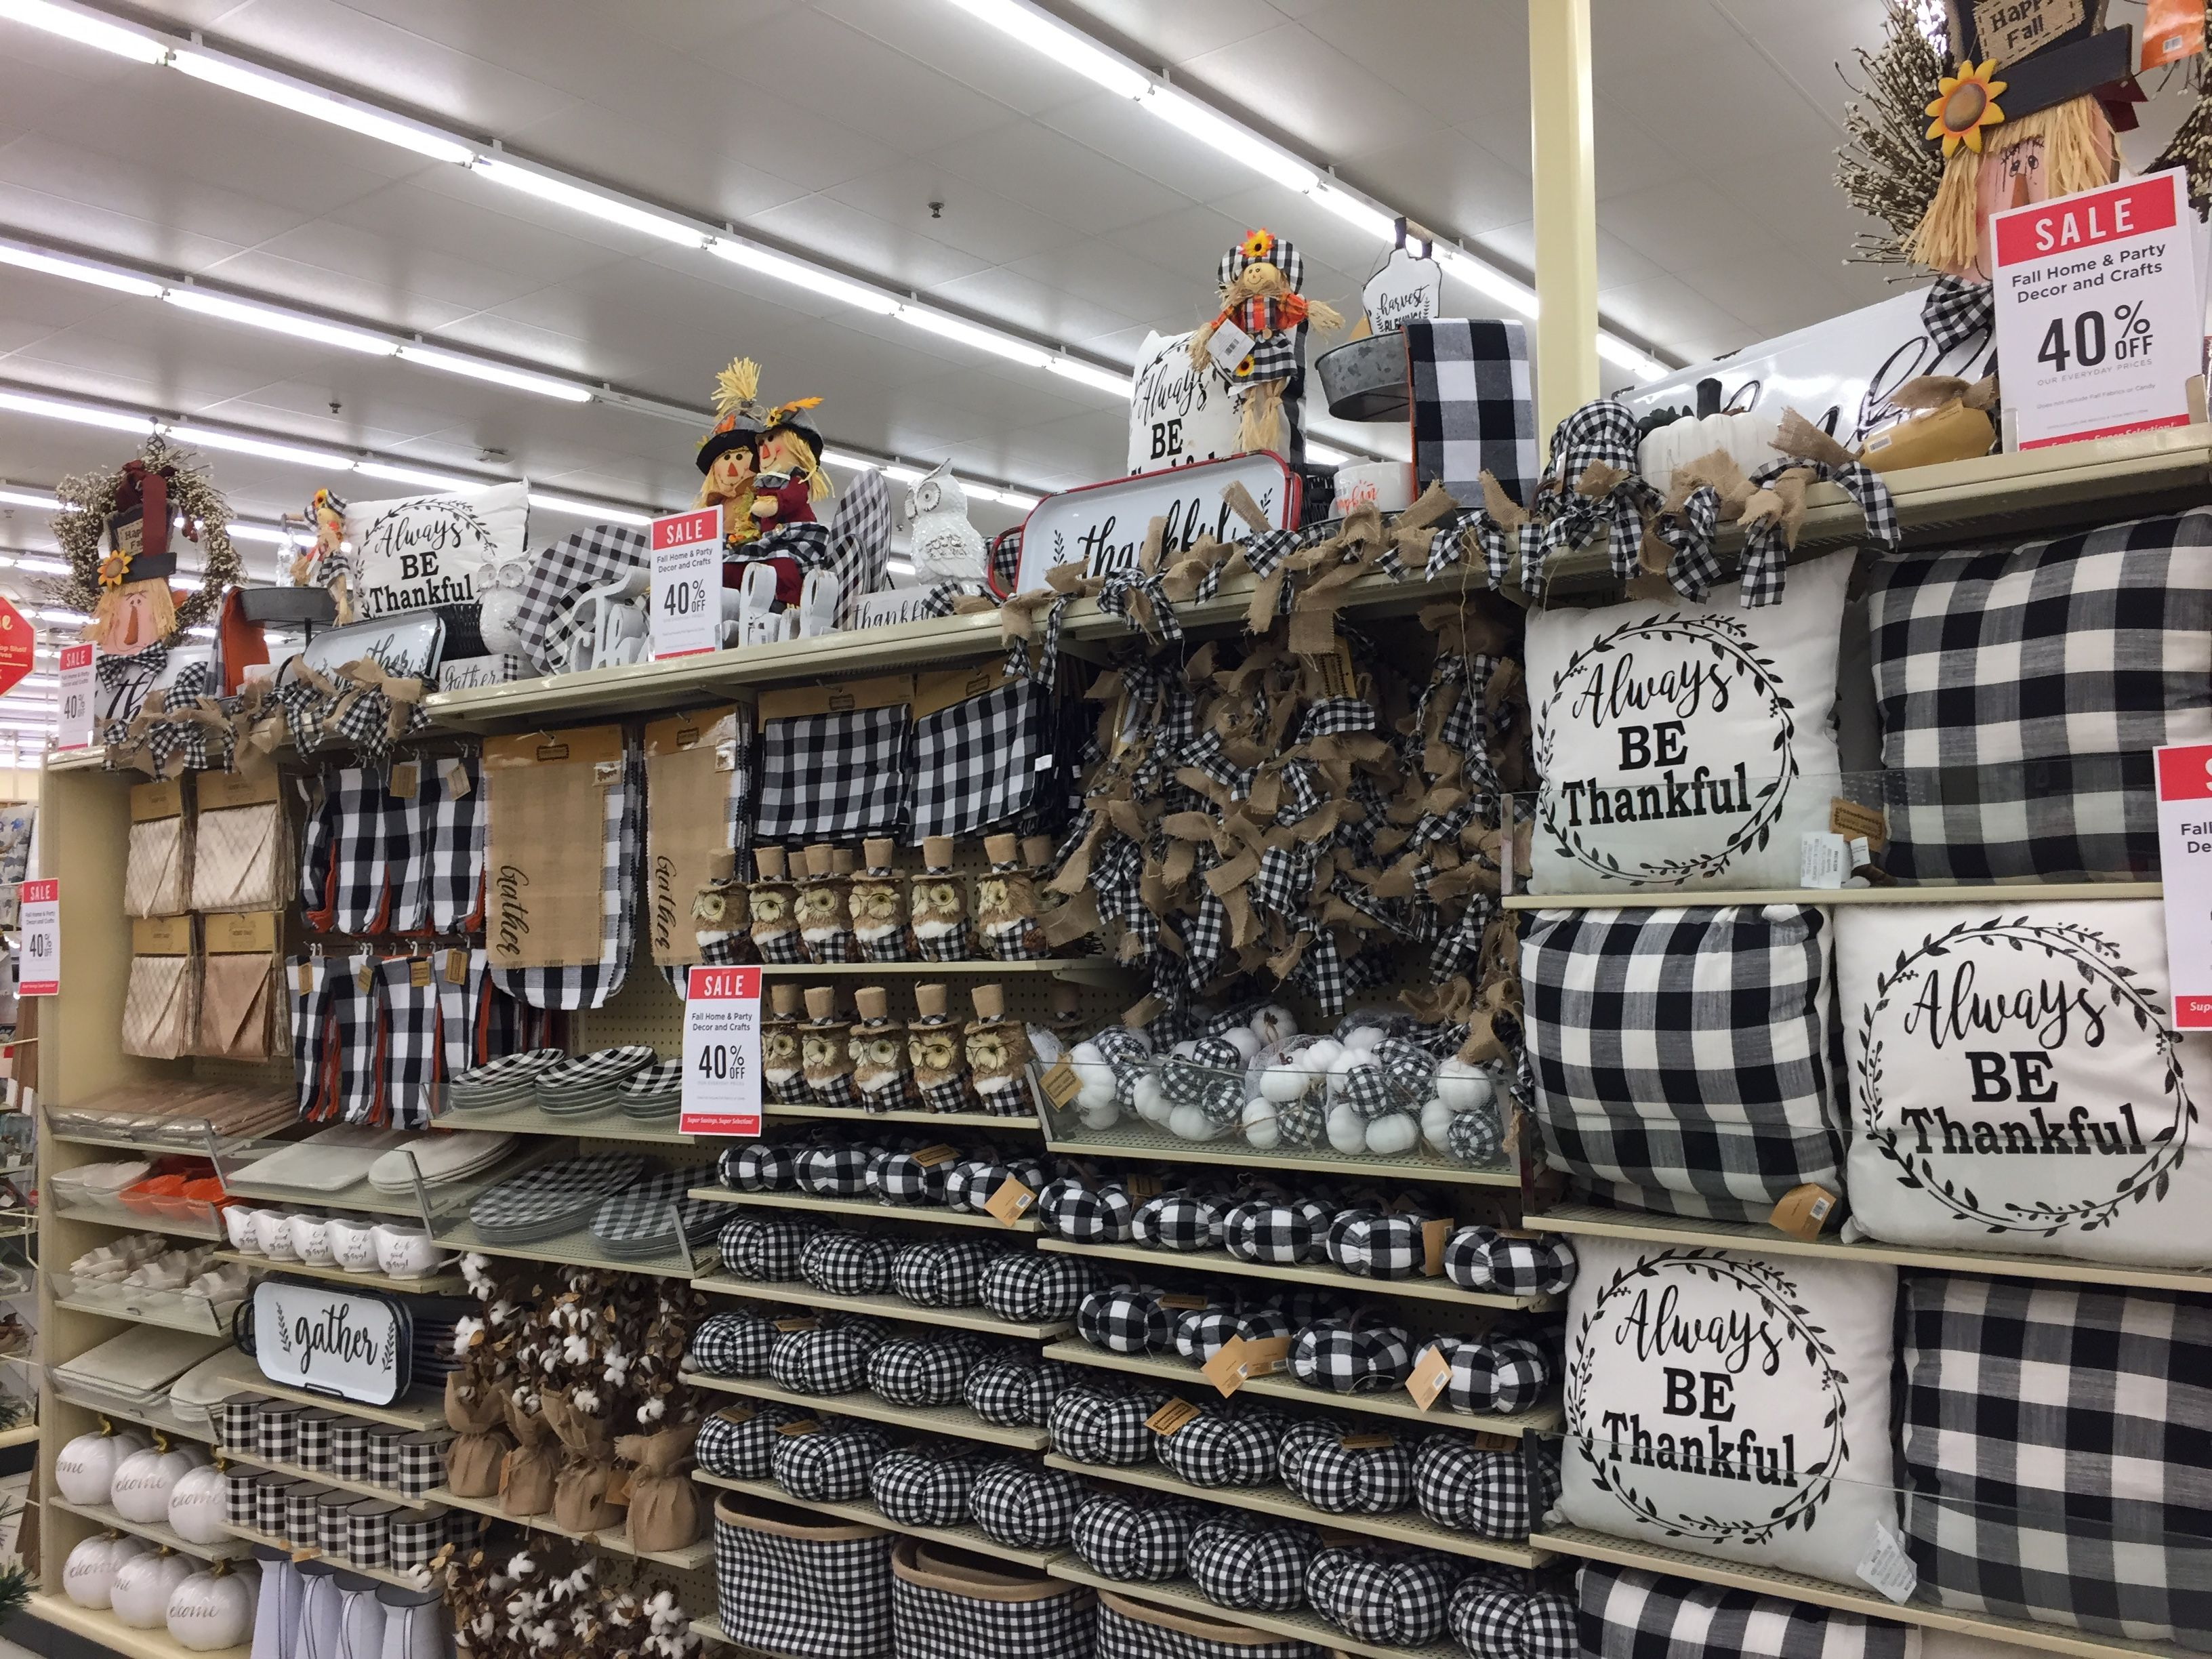 Hobby Lobby Robert Stanley collection Hobby lobby decor